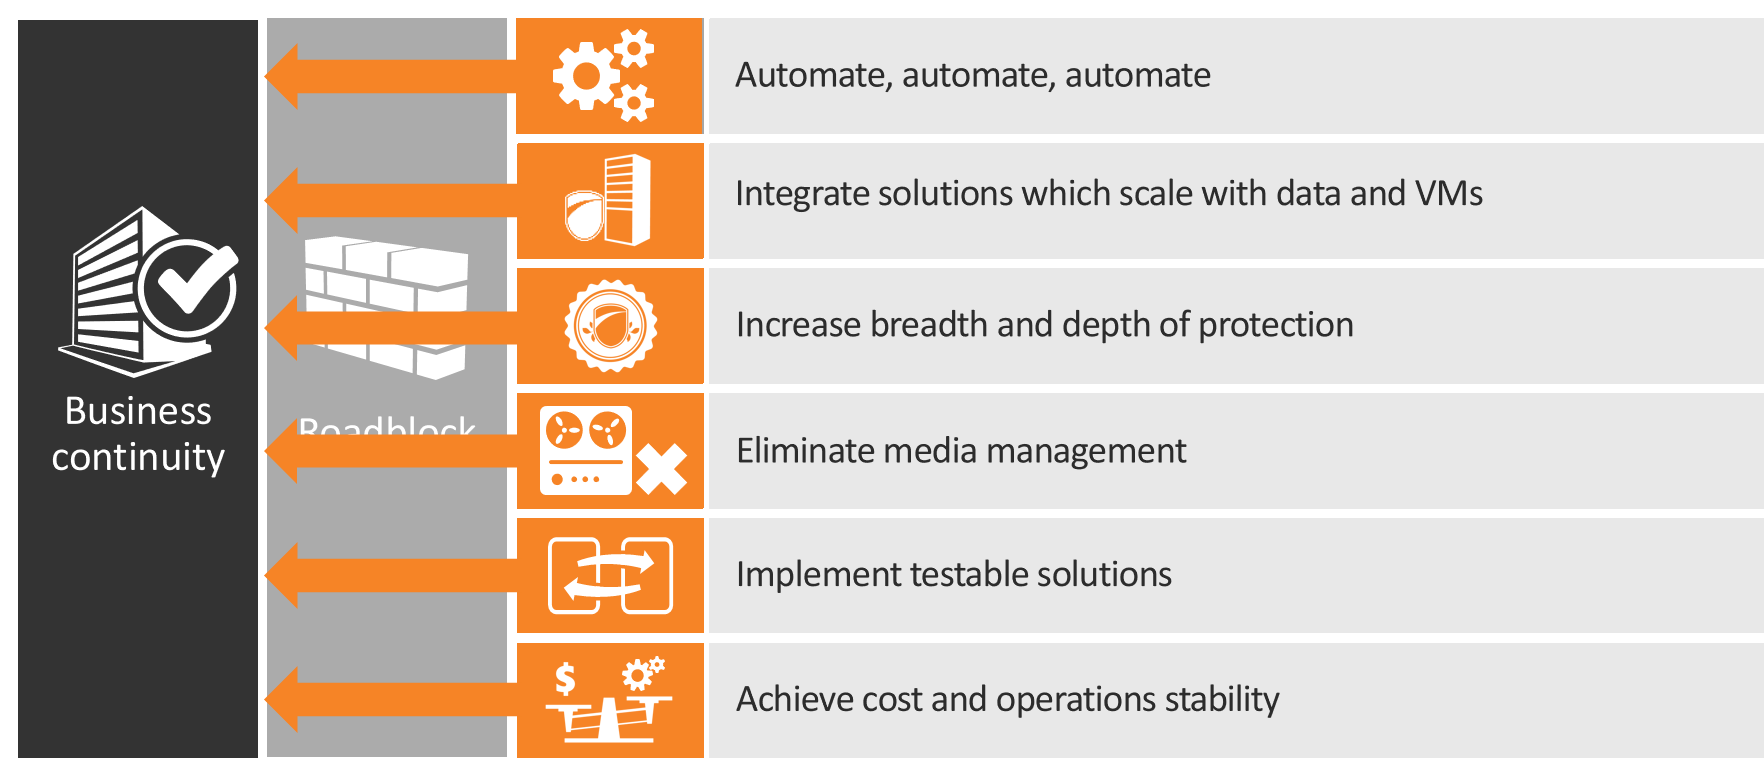 An image of ways to bypass the roadblocks to effective BCDR solutions: Automate, automate, automate; Integrate solutions which scale with data and VMs; increase breadth and depth of protection; eliminate media management; implement testable solutions; achieve cost and operations stability